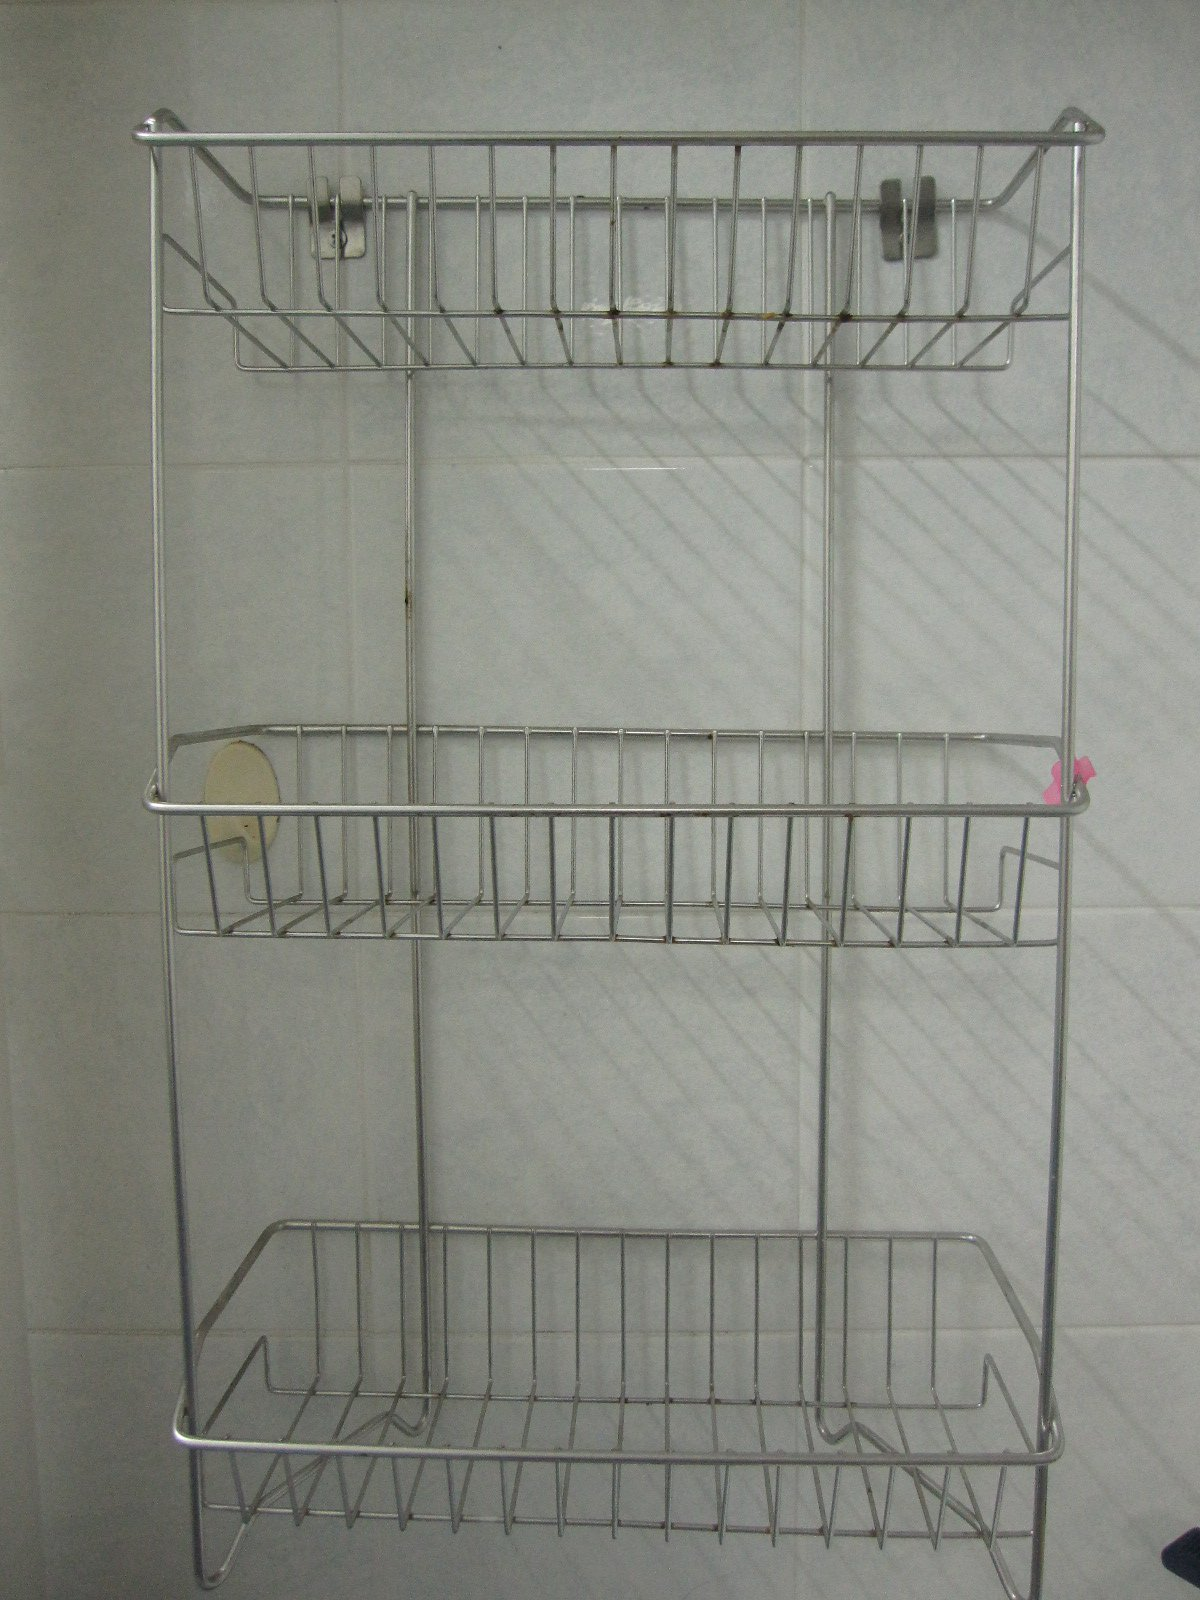 FOR SALE: Stainless Steel Bath Rack 2pcs